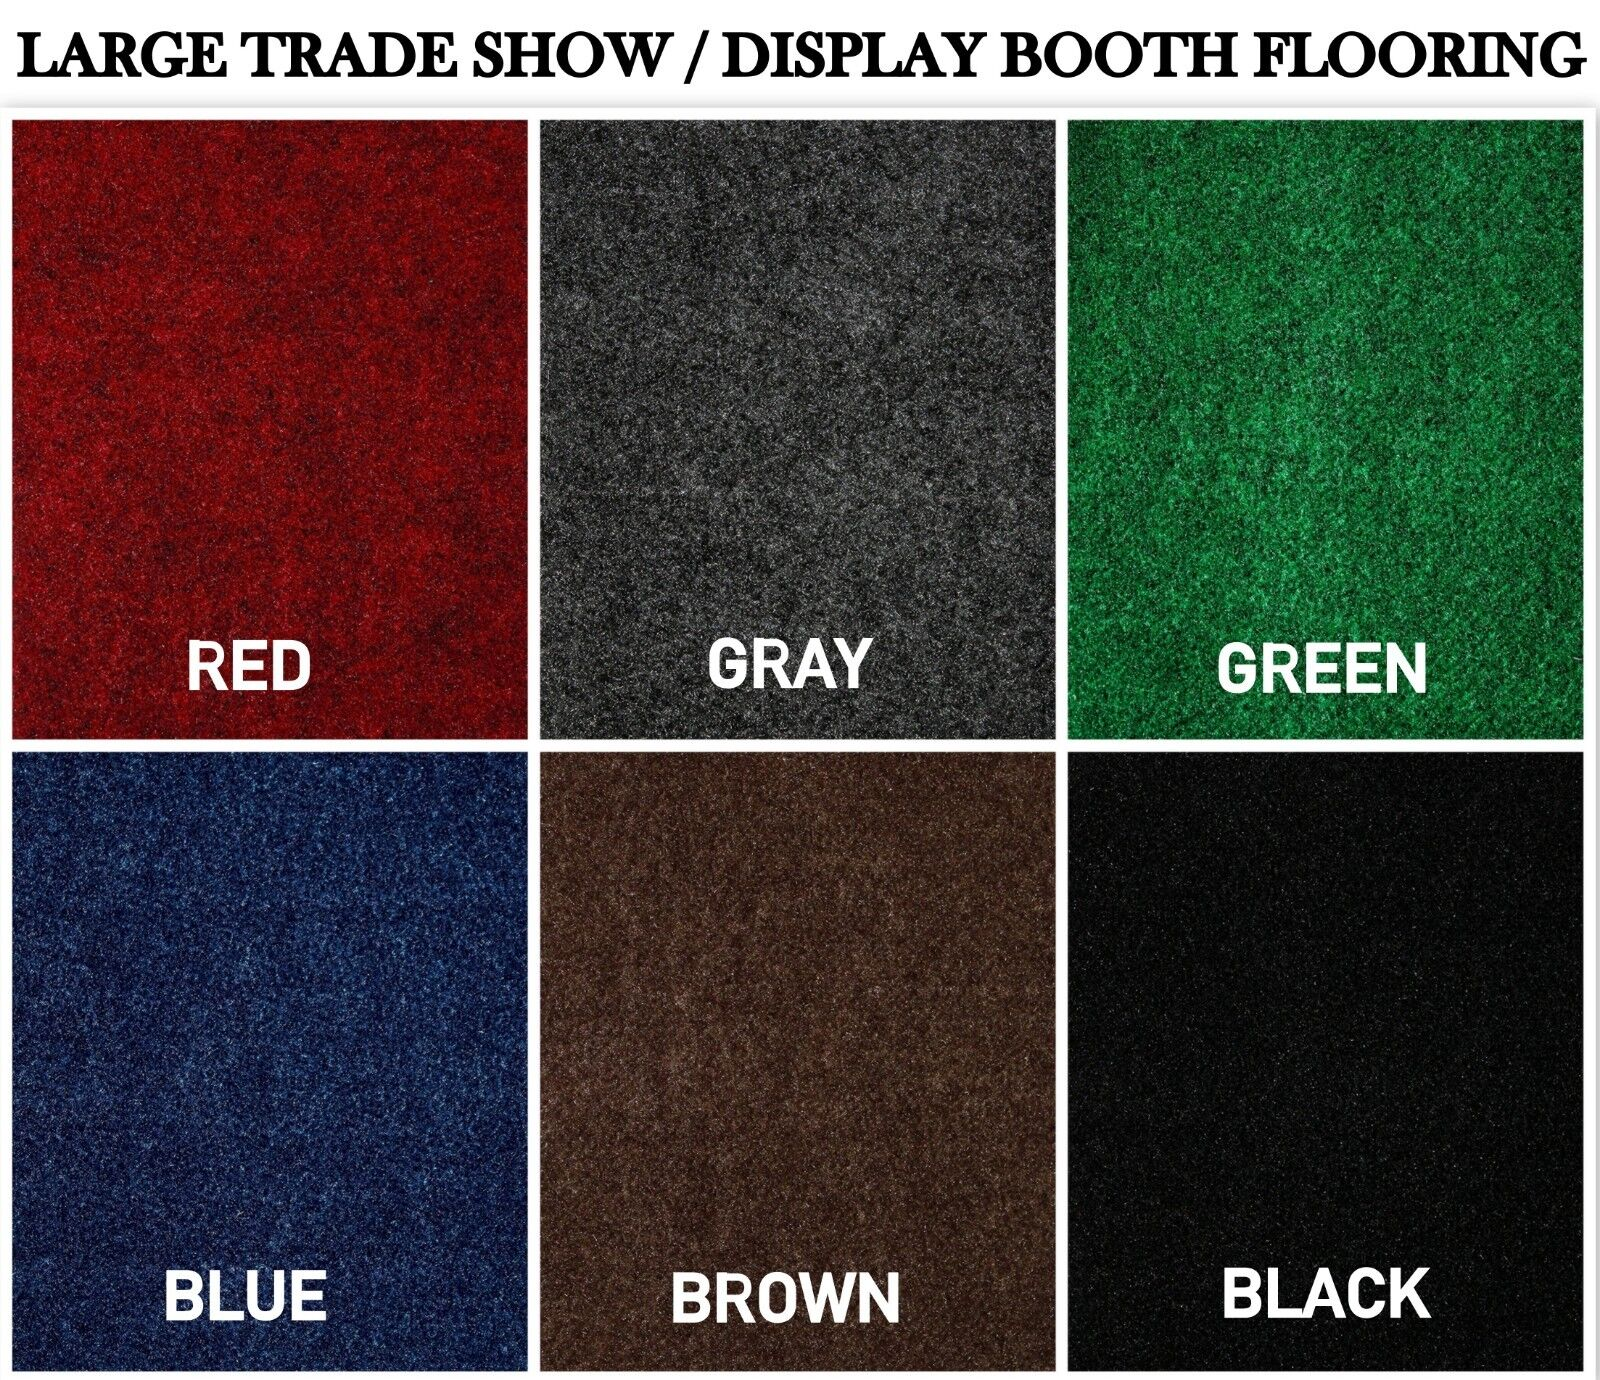 Large Custom Cut-to-Fit Trade-Show Area Rug Carpets.